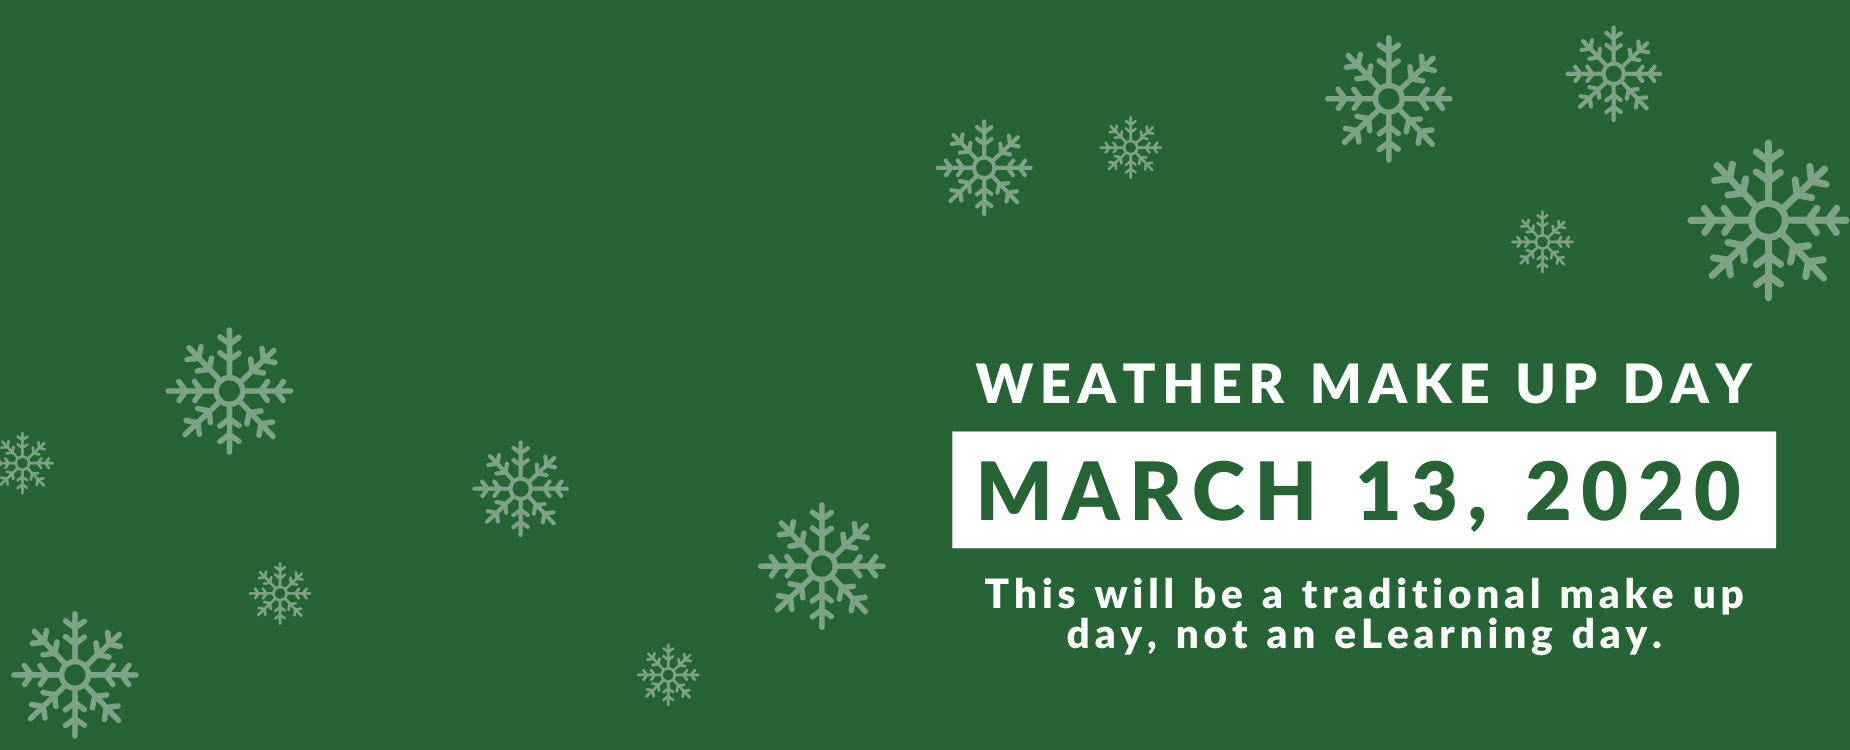 Weather Make up Day March 13, 2020. This will be a traditional make up day, not an eLearning day.